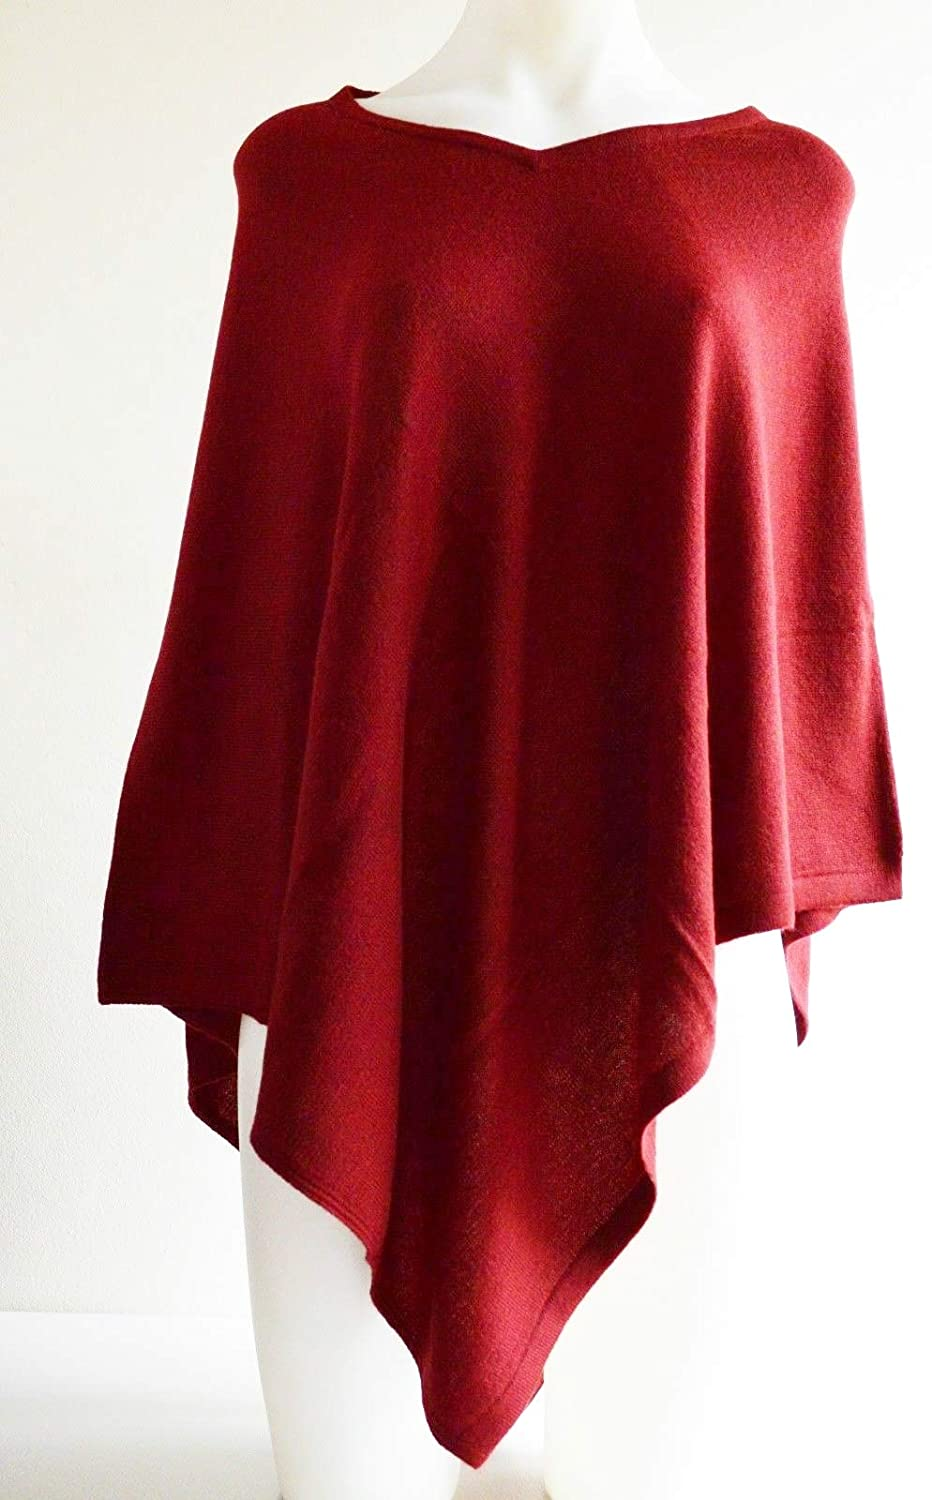 100% Cashmere Pashmina Maroon Poncho Wool Cape Wrap Soft Warm Women Long Sleeve Winter